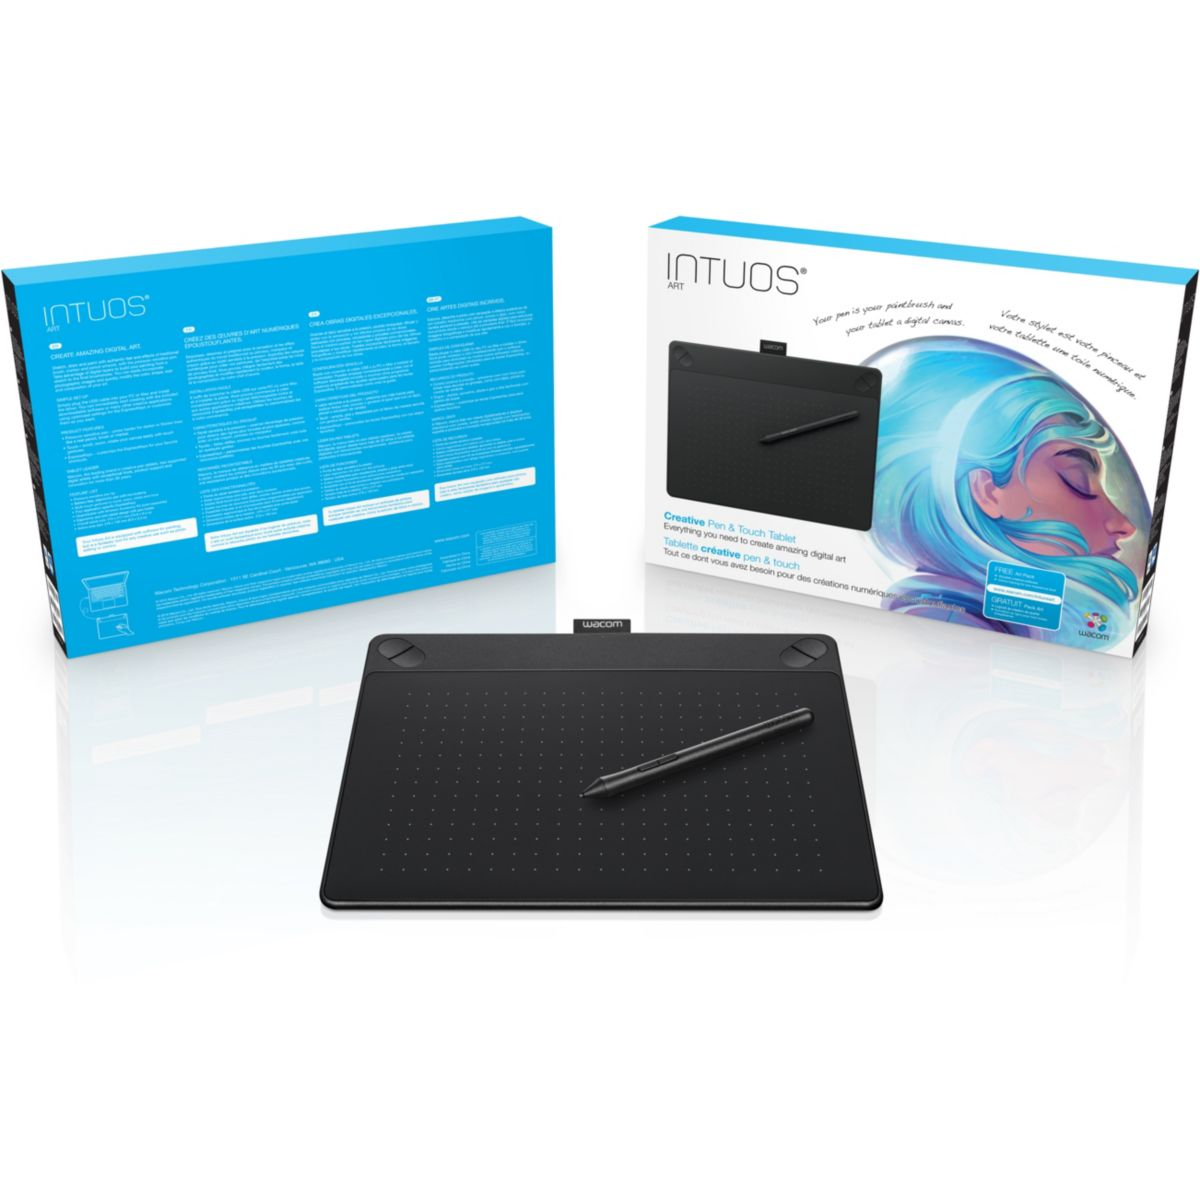 Tablette graph wacom intuos art black pe – 5 € de remise : code cash5